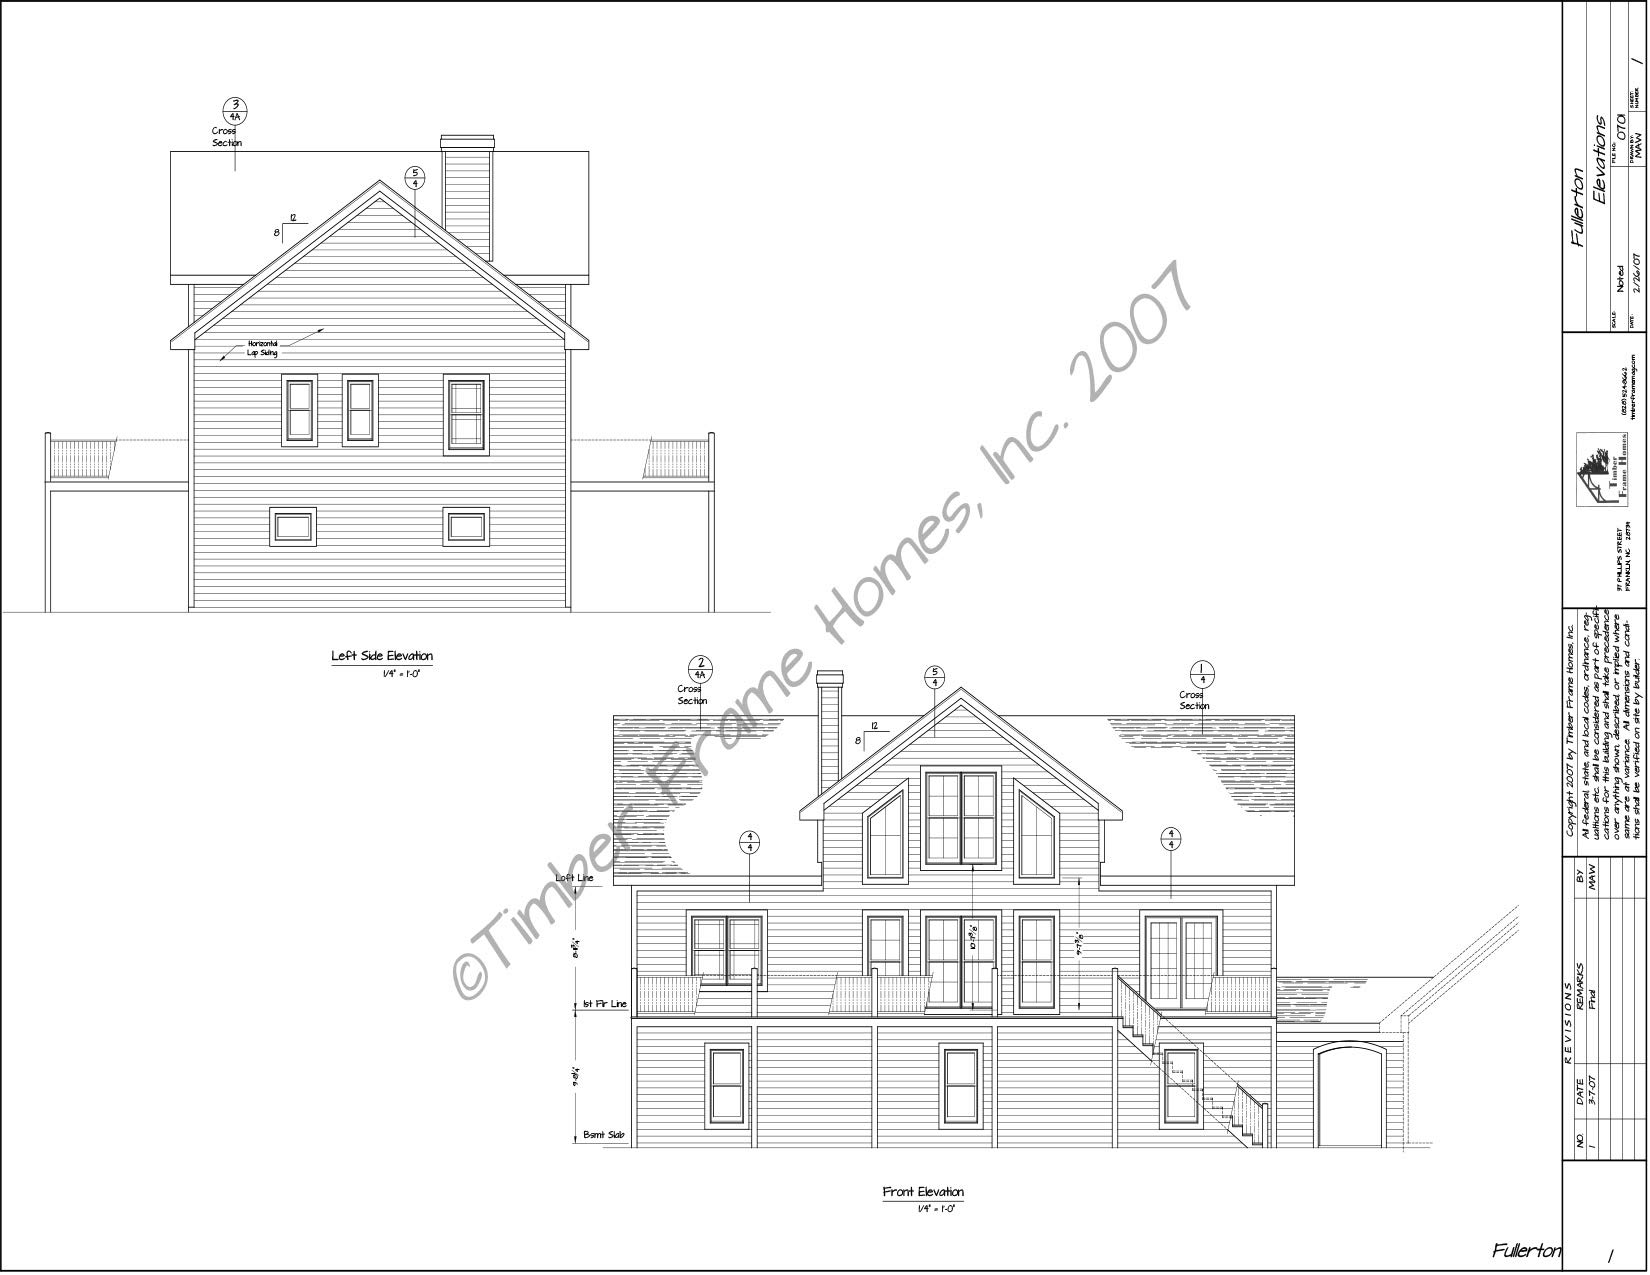 Home Plans - The Fullerton Timber Frame (DESIGN PROOF) by TimberStead